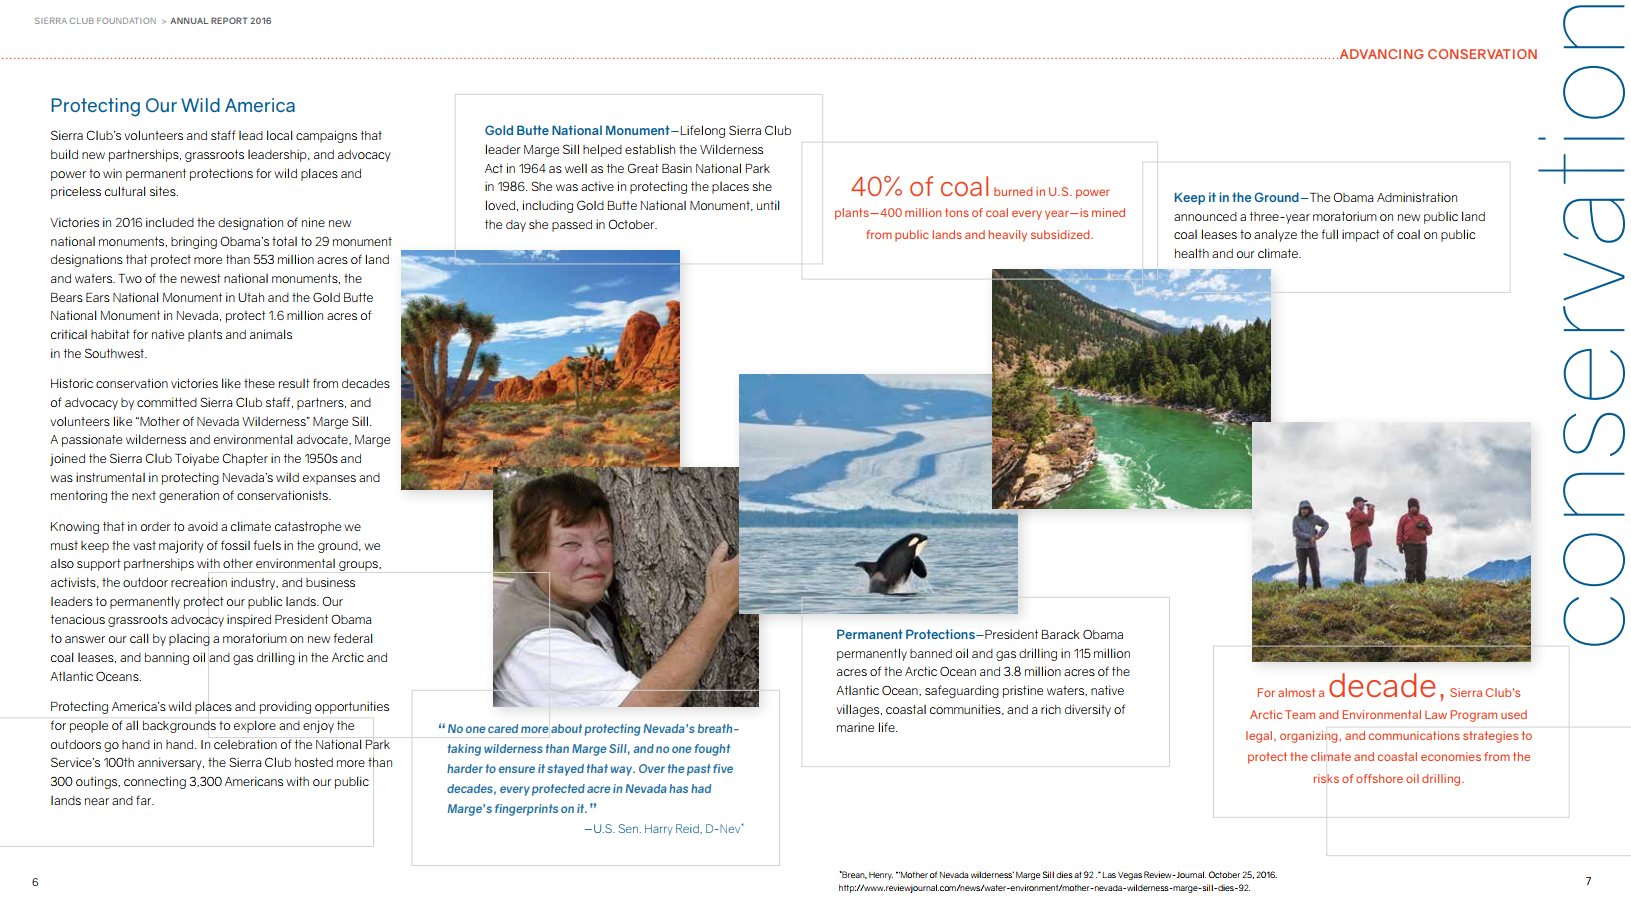 A photo of an interior page of the Sierra Club's annual report.